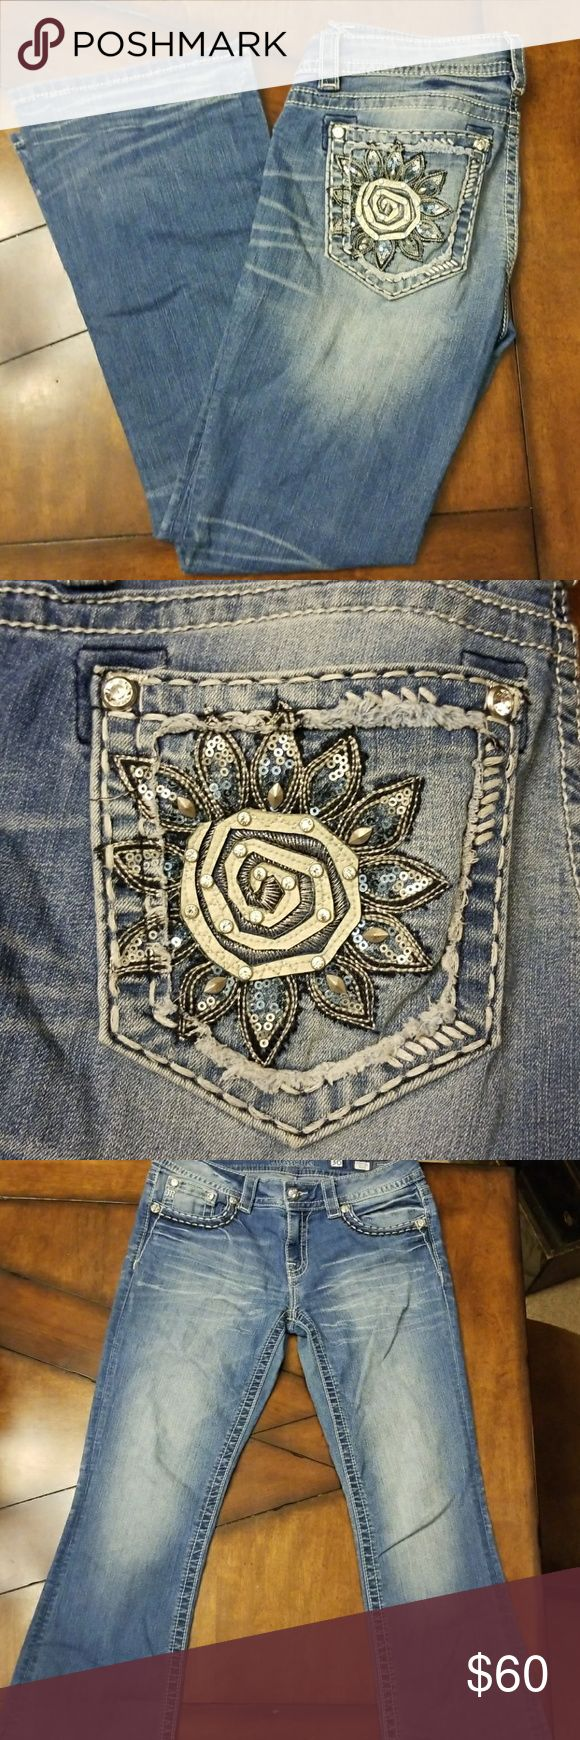 Miss Me jeans Bootcut, light denim wash jeans. No holes or damage! Very good jeans. Inseam 30 Miss Me Jeans Boot Cut